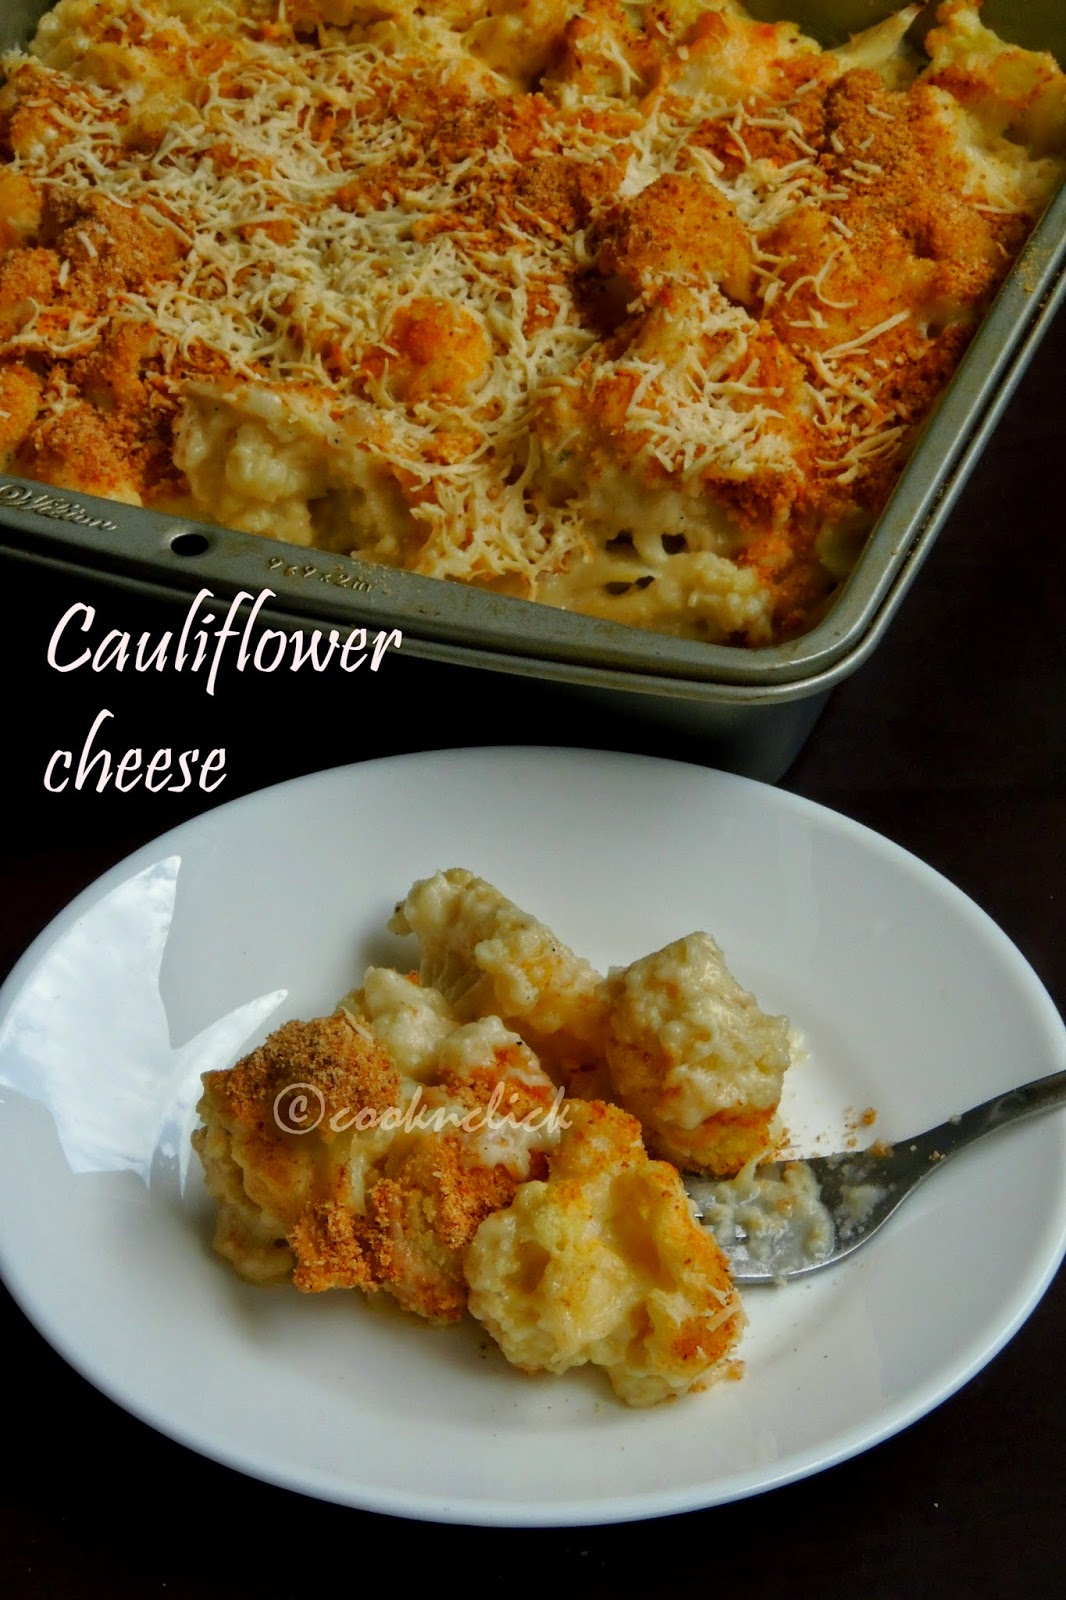 Cheesy cauliflower, cauliflower cheese